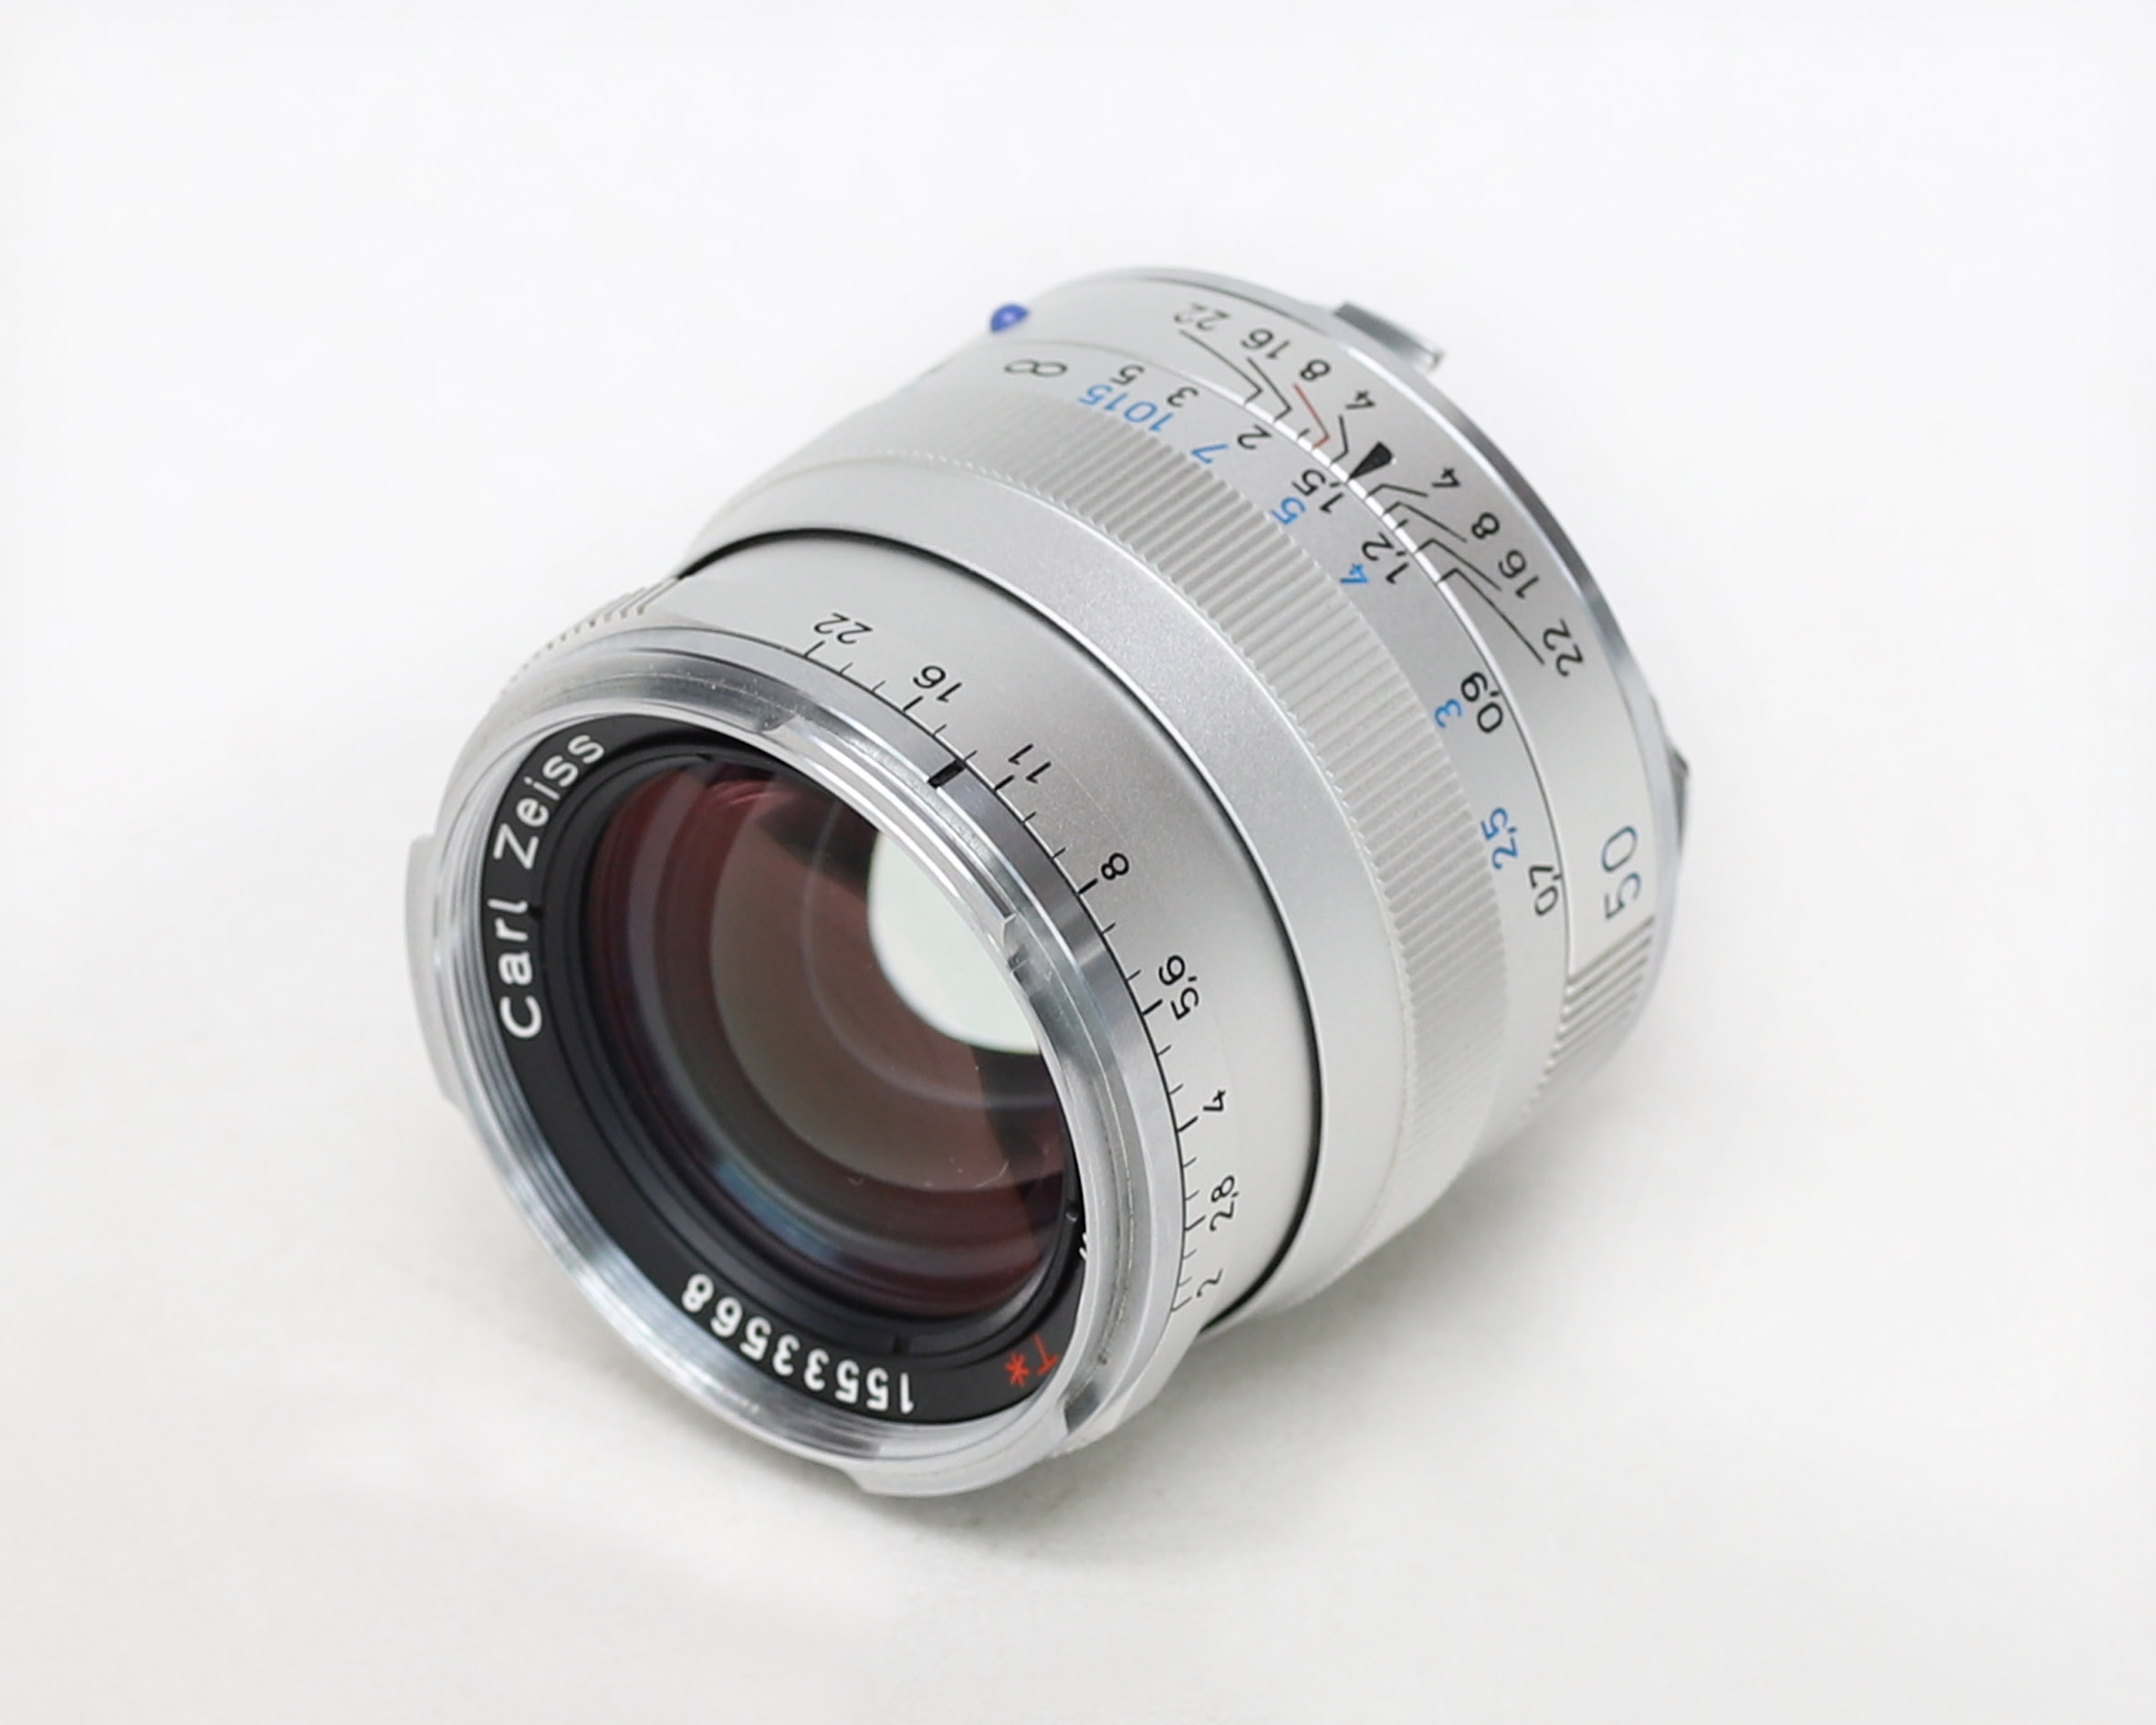 Carl Zeiss Planar T* 50mm f/2 ZM Lens (Black)